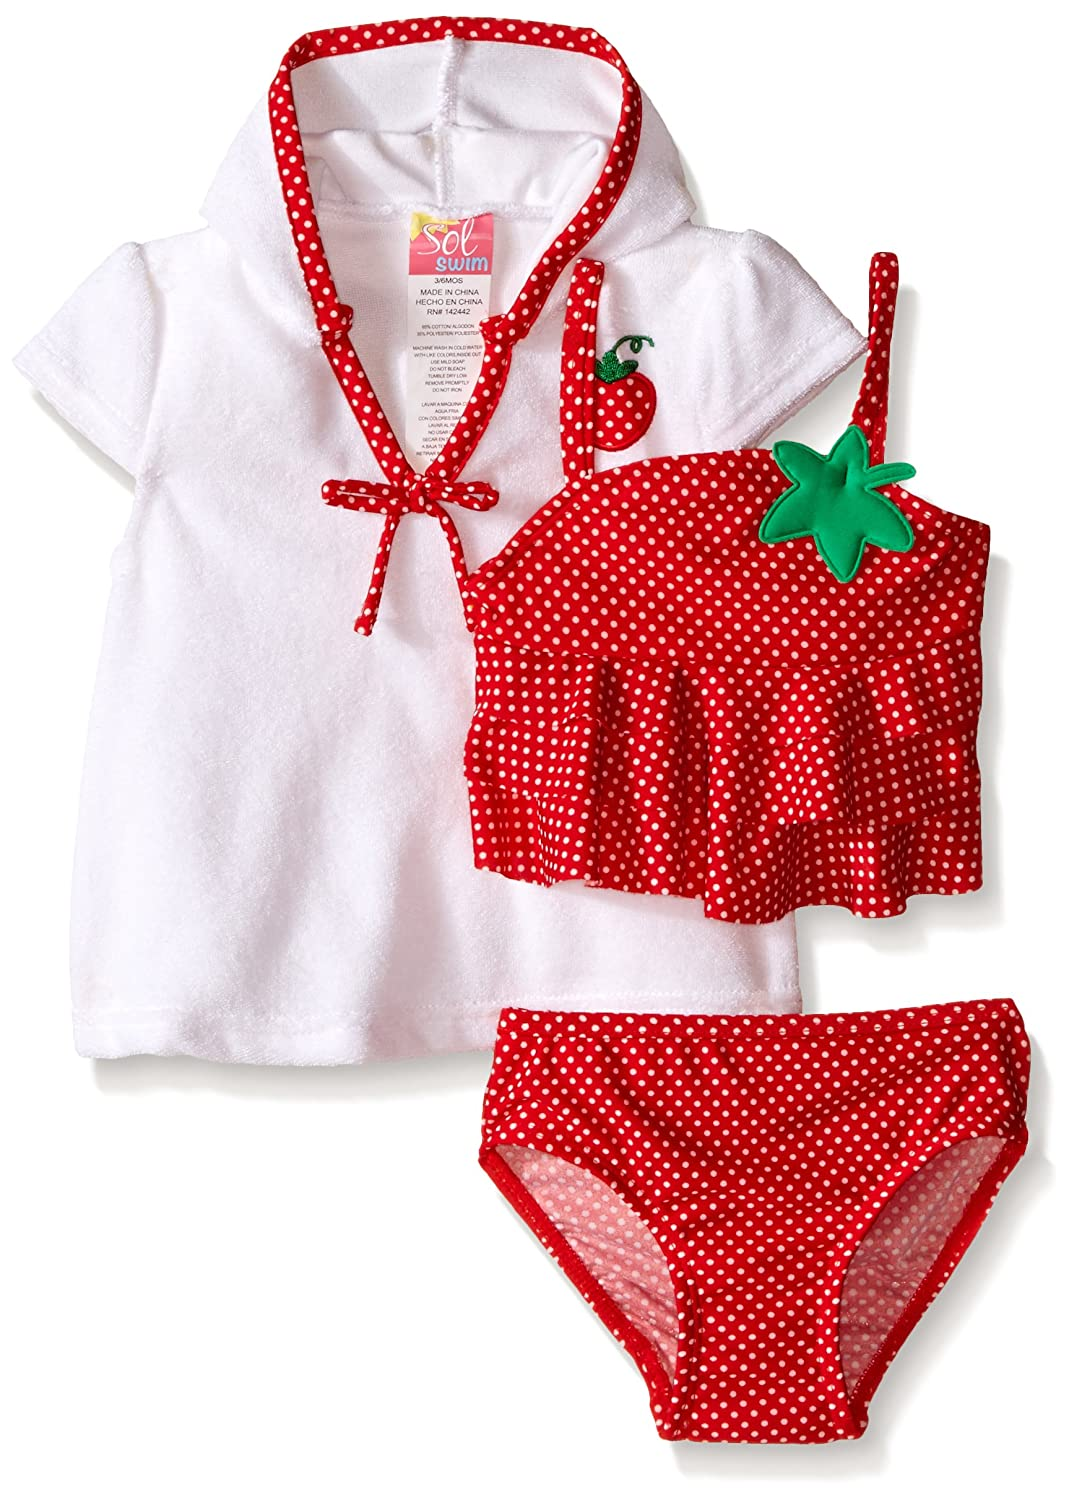 SOL Swim Baby Girls' Strawberry Doll Swimsuit with Terry Cover Up Red 24 Months Solo International Inc Baby